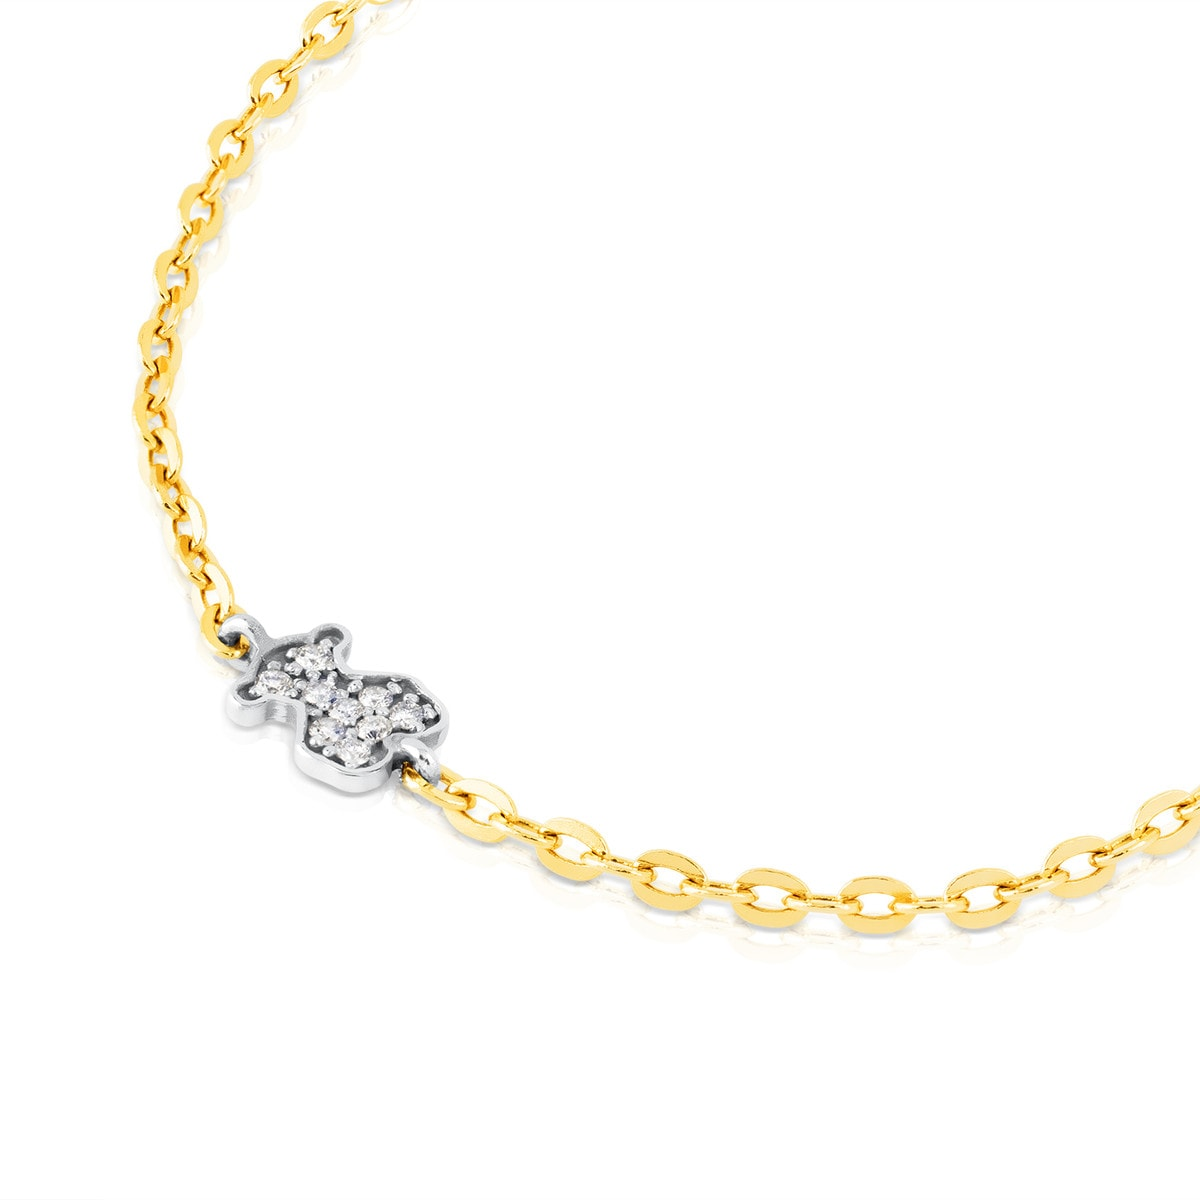 Yellow and White Gold Baby TOUS Bracelet with Diamond